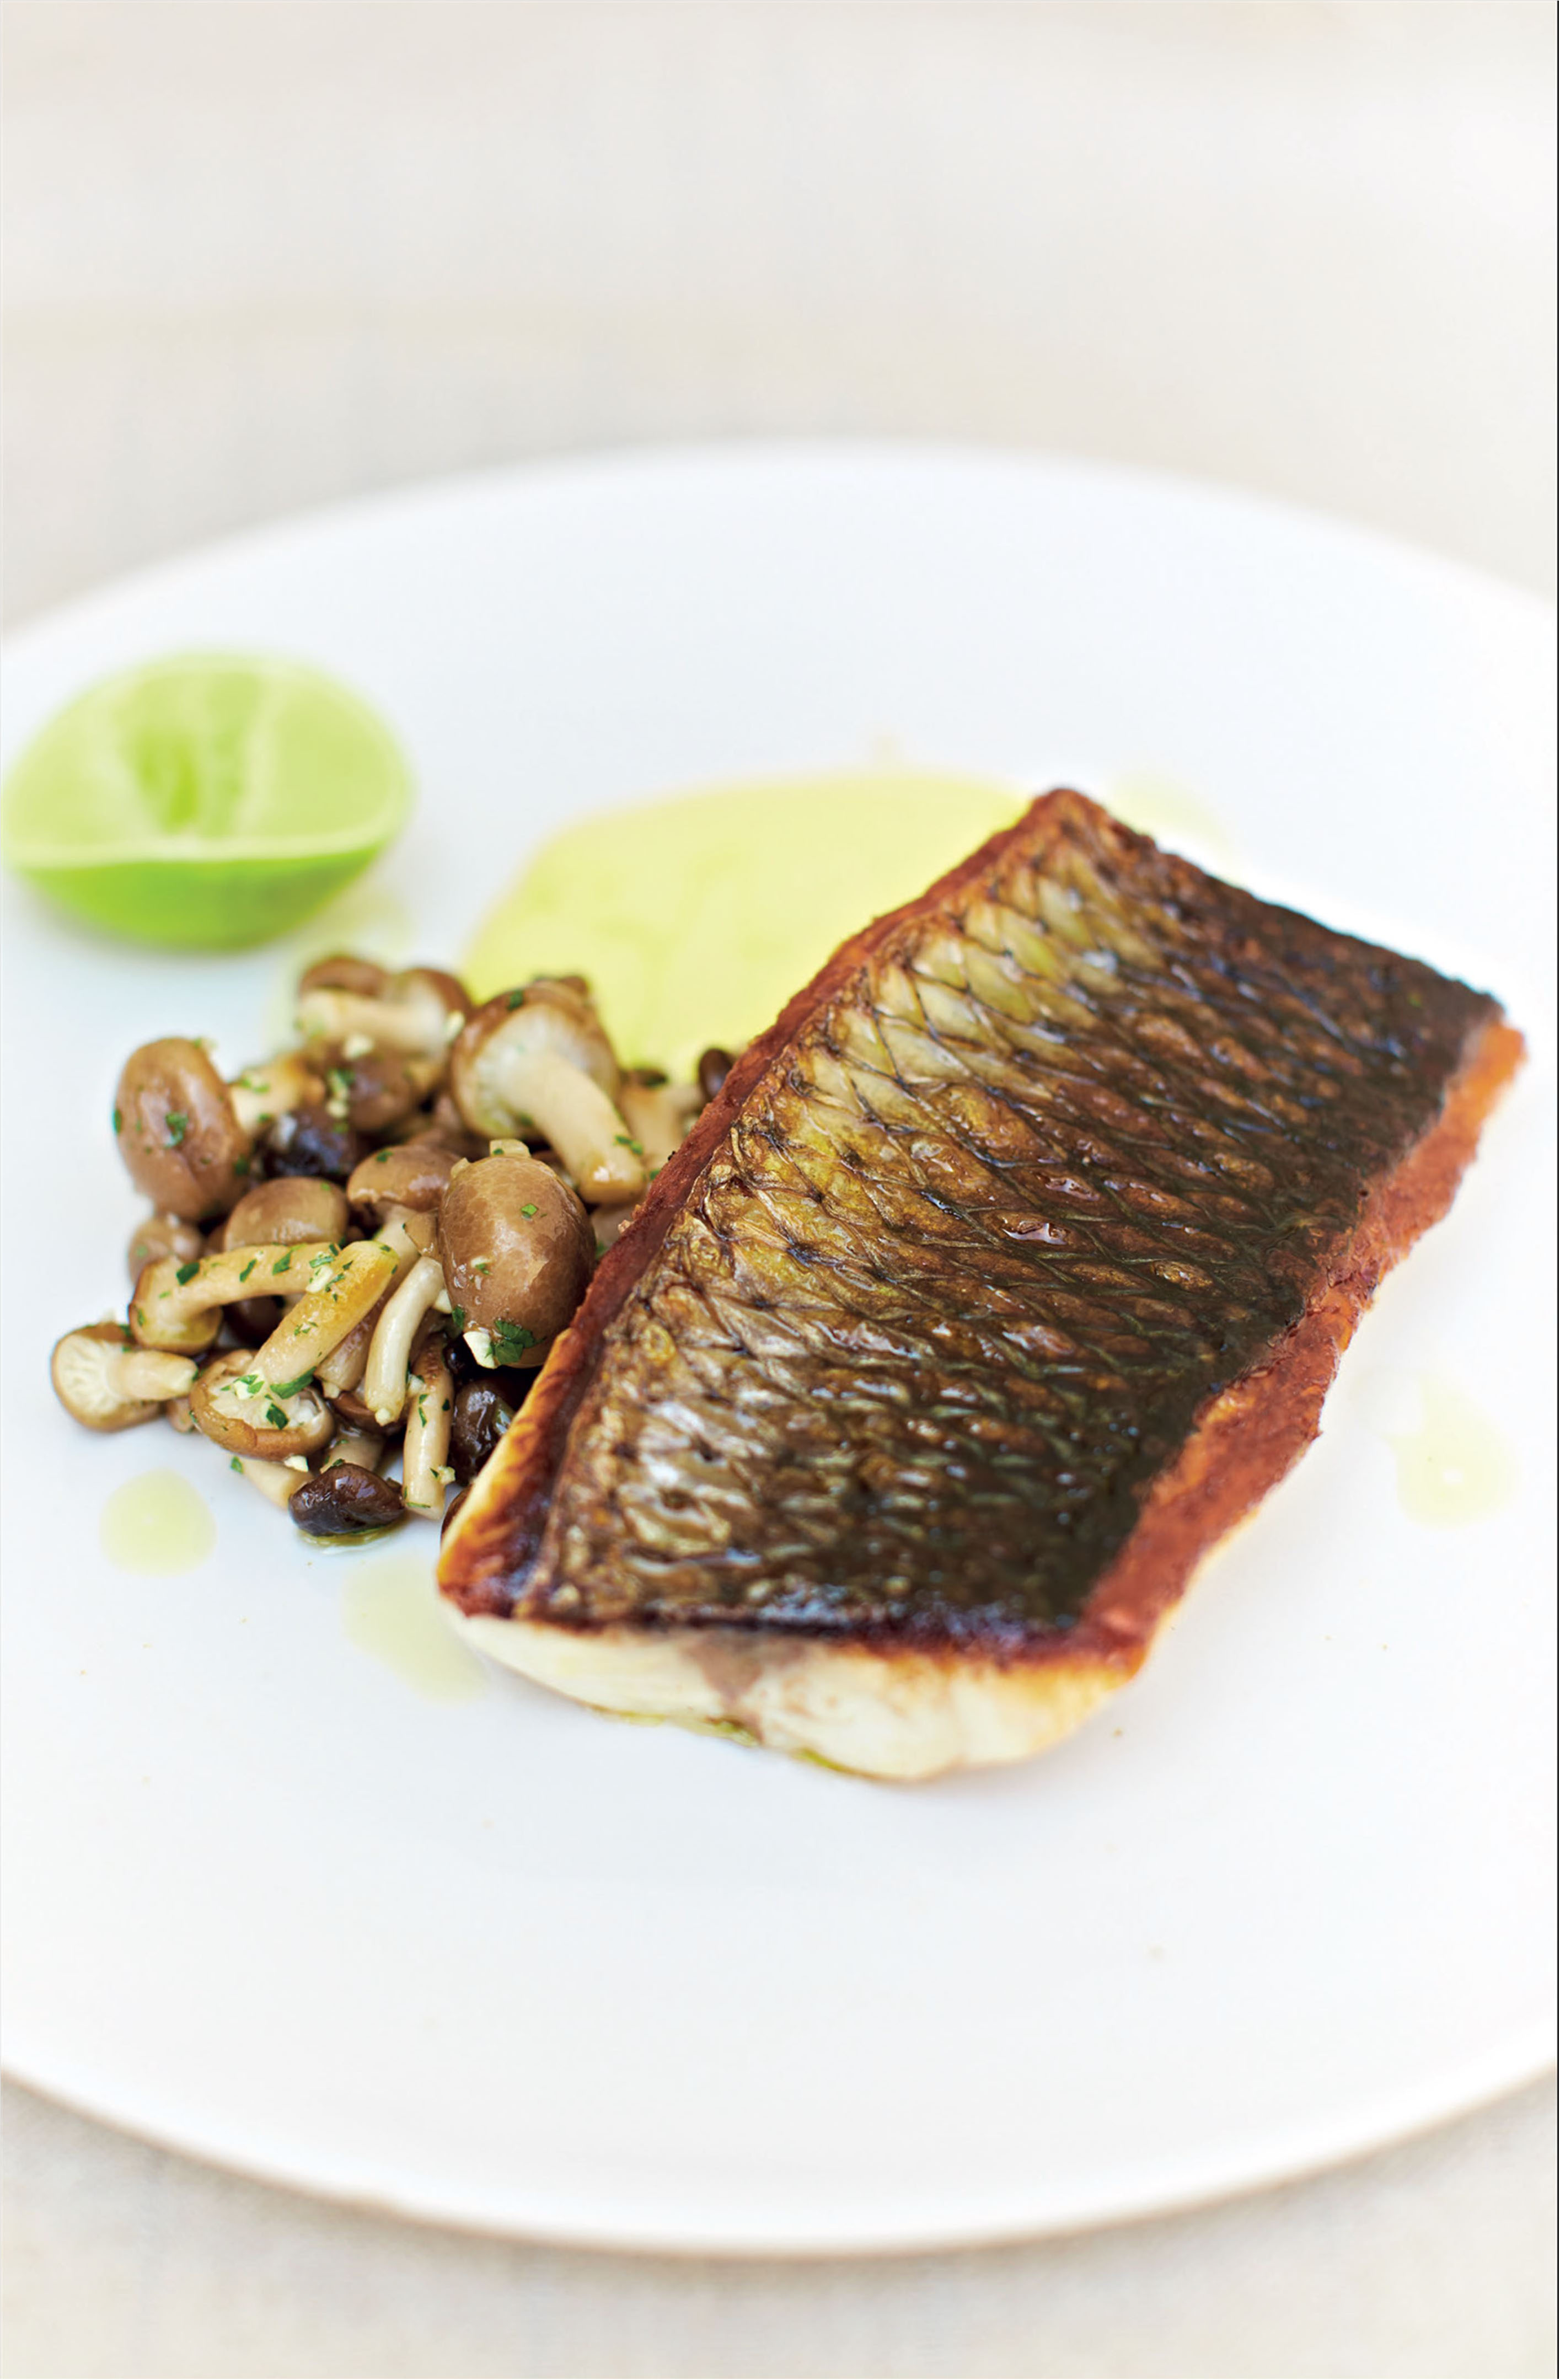 Grey mullet with mushrooms and saffron and roasted garlic potato purée